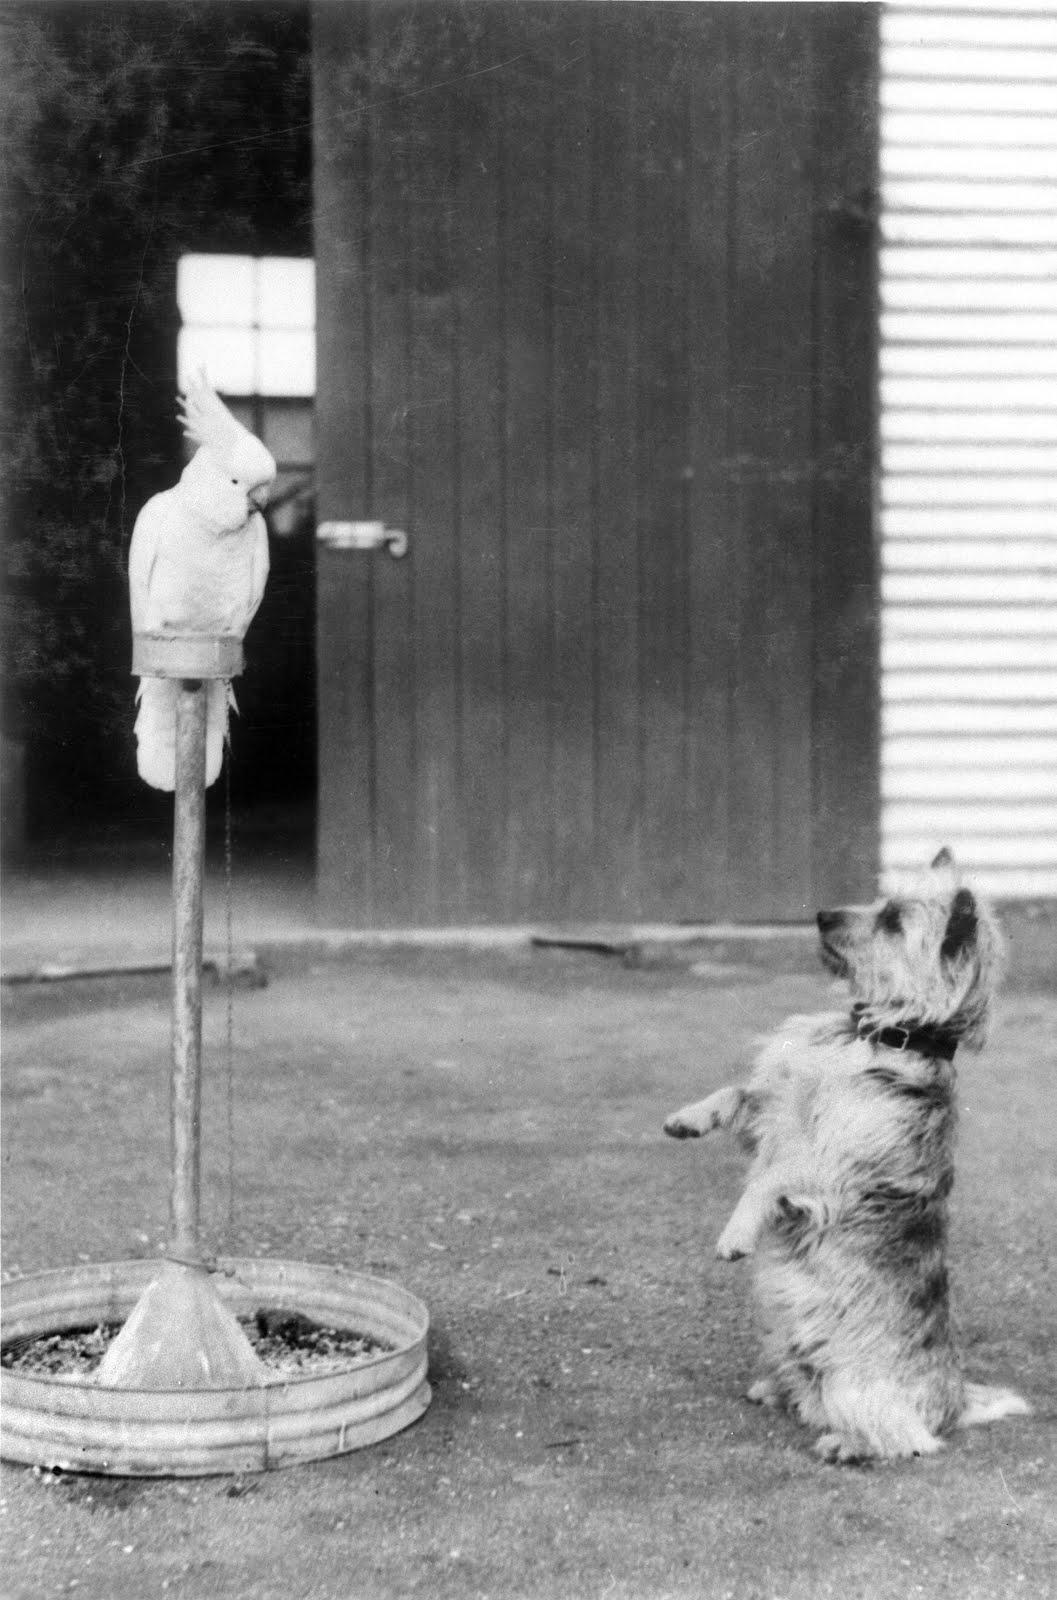 1943 mascots, Whacko the sulphur crested cockatoo, and Cobber the dog, Australia